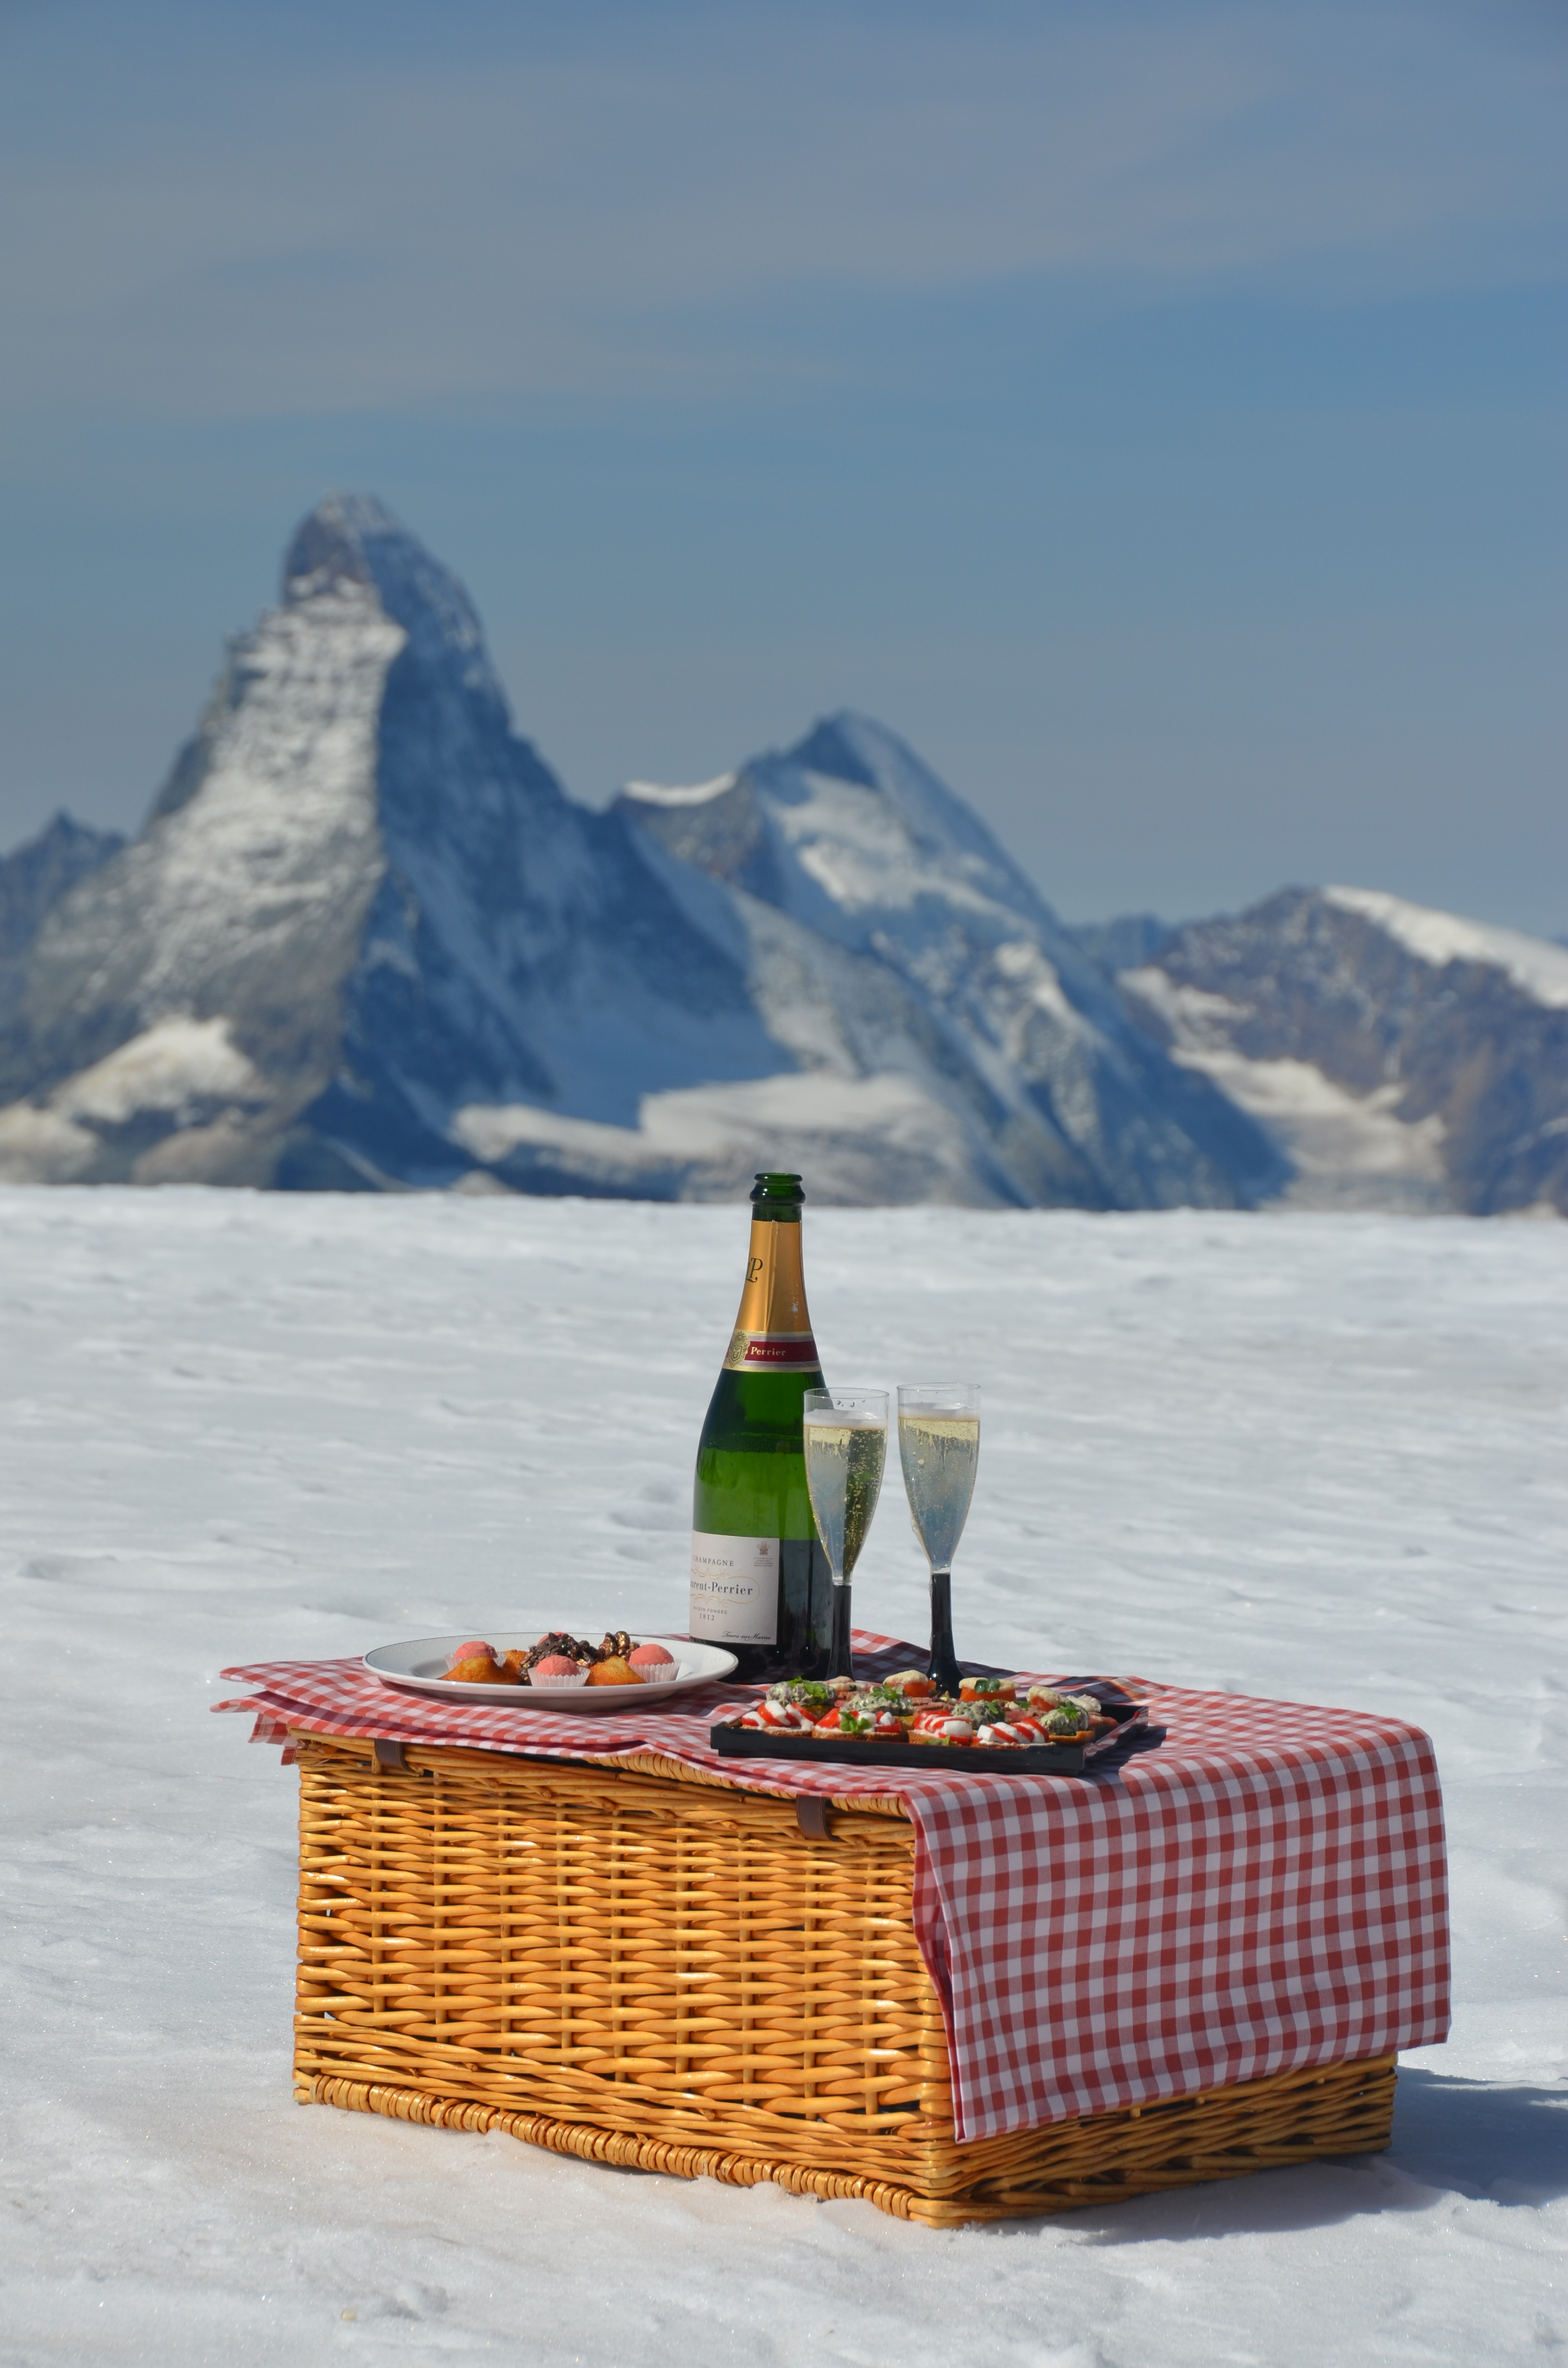 Guests can also have lunch 3,000 feet above sea level.